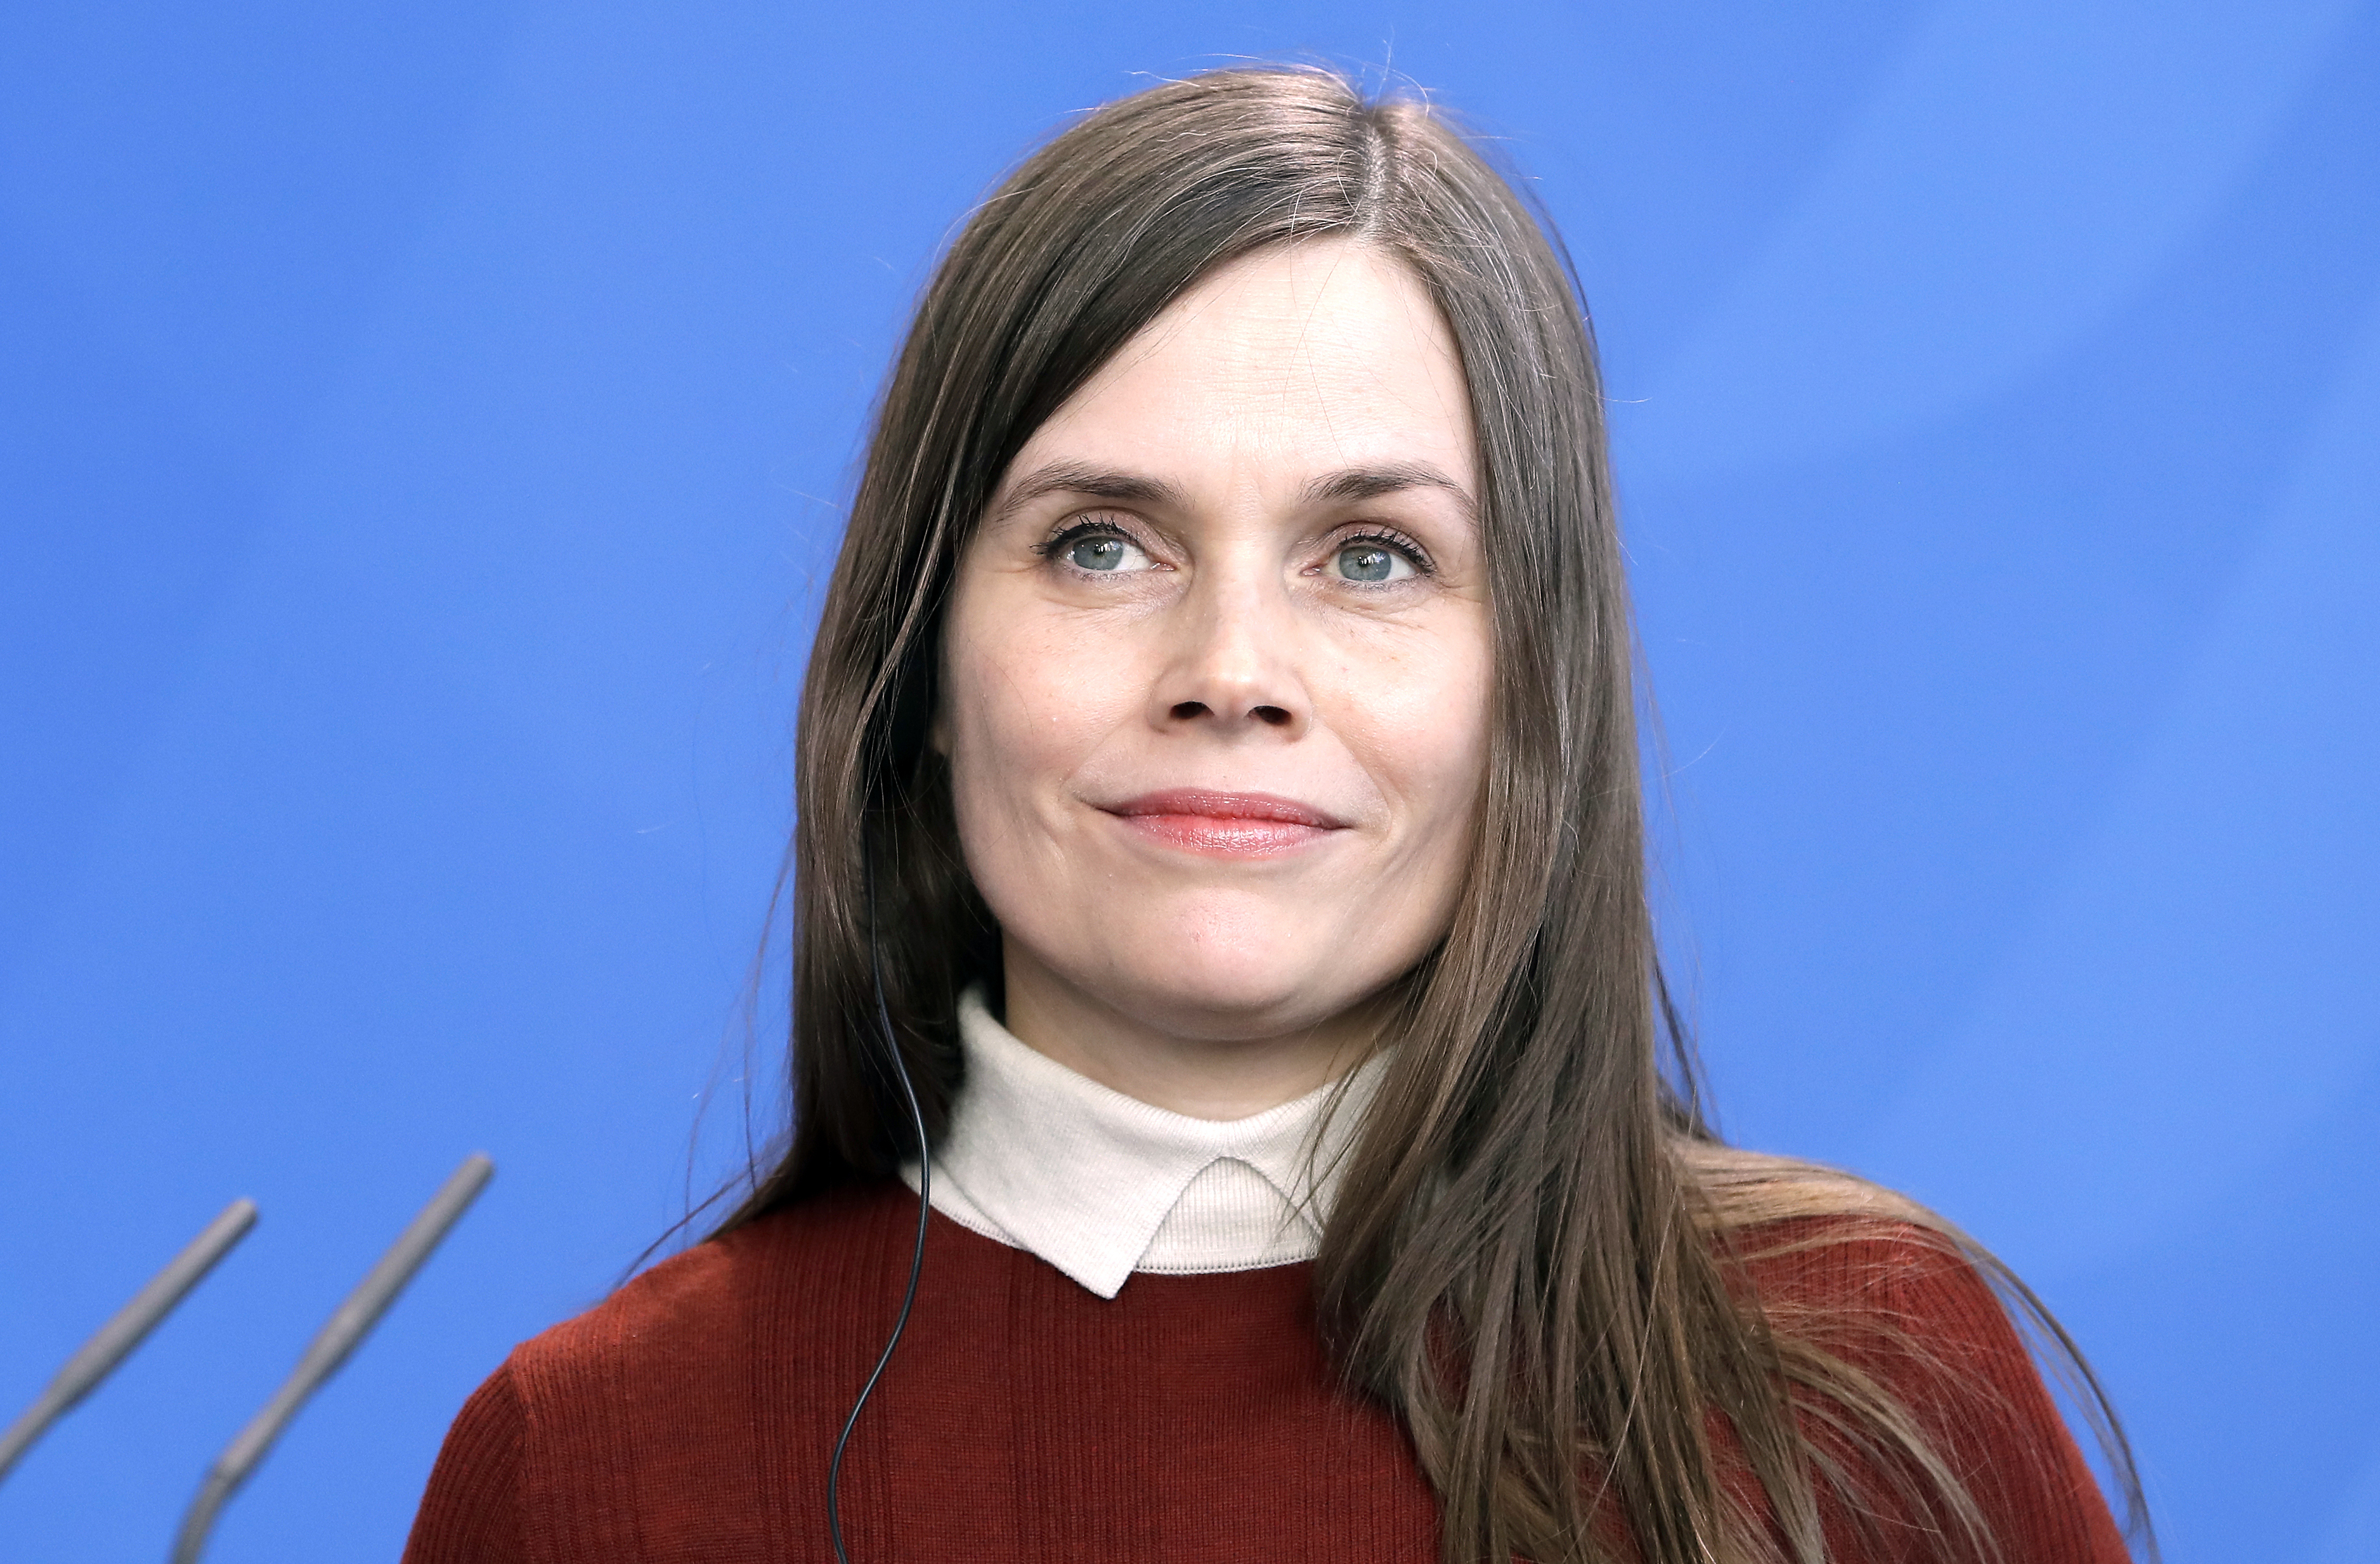 Icelands leader wont be around to welcome Pence